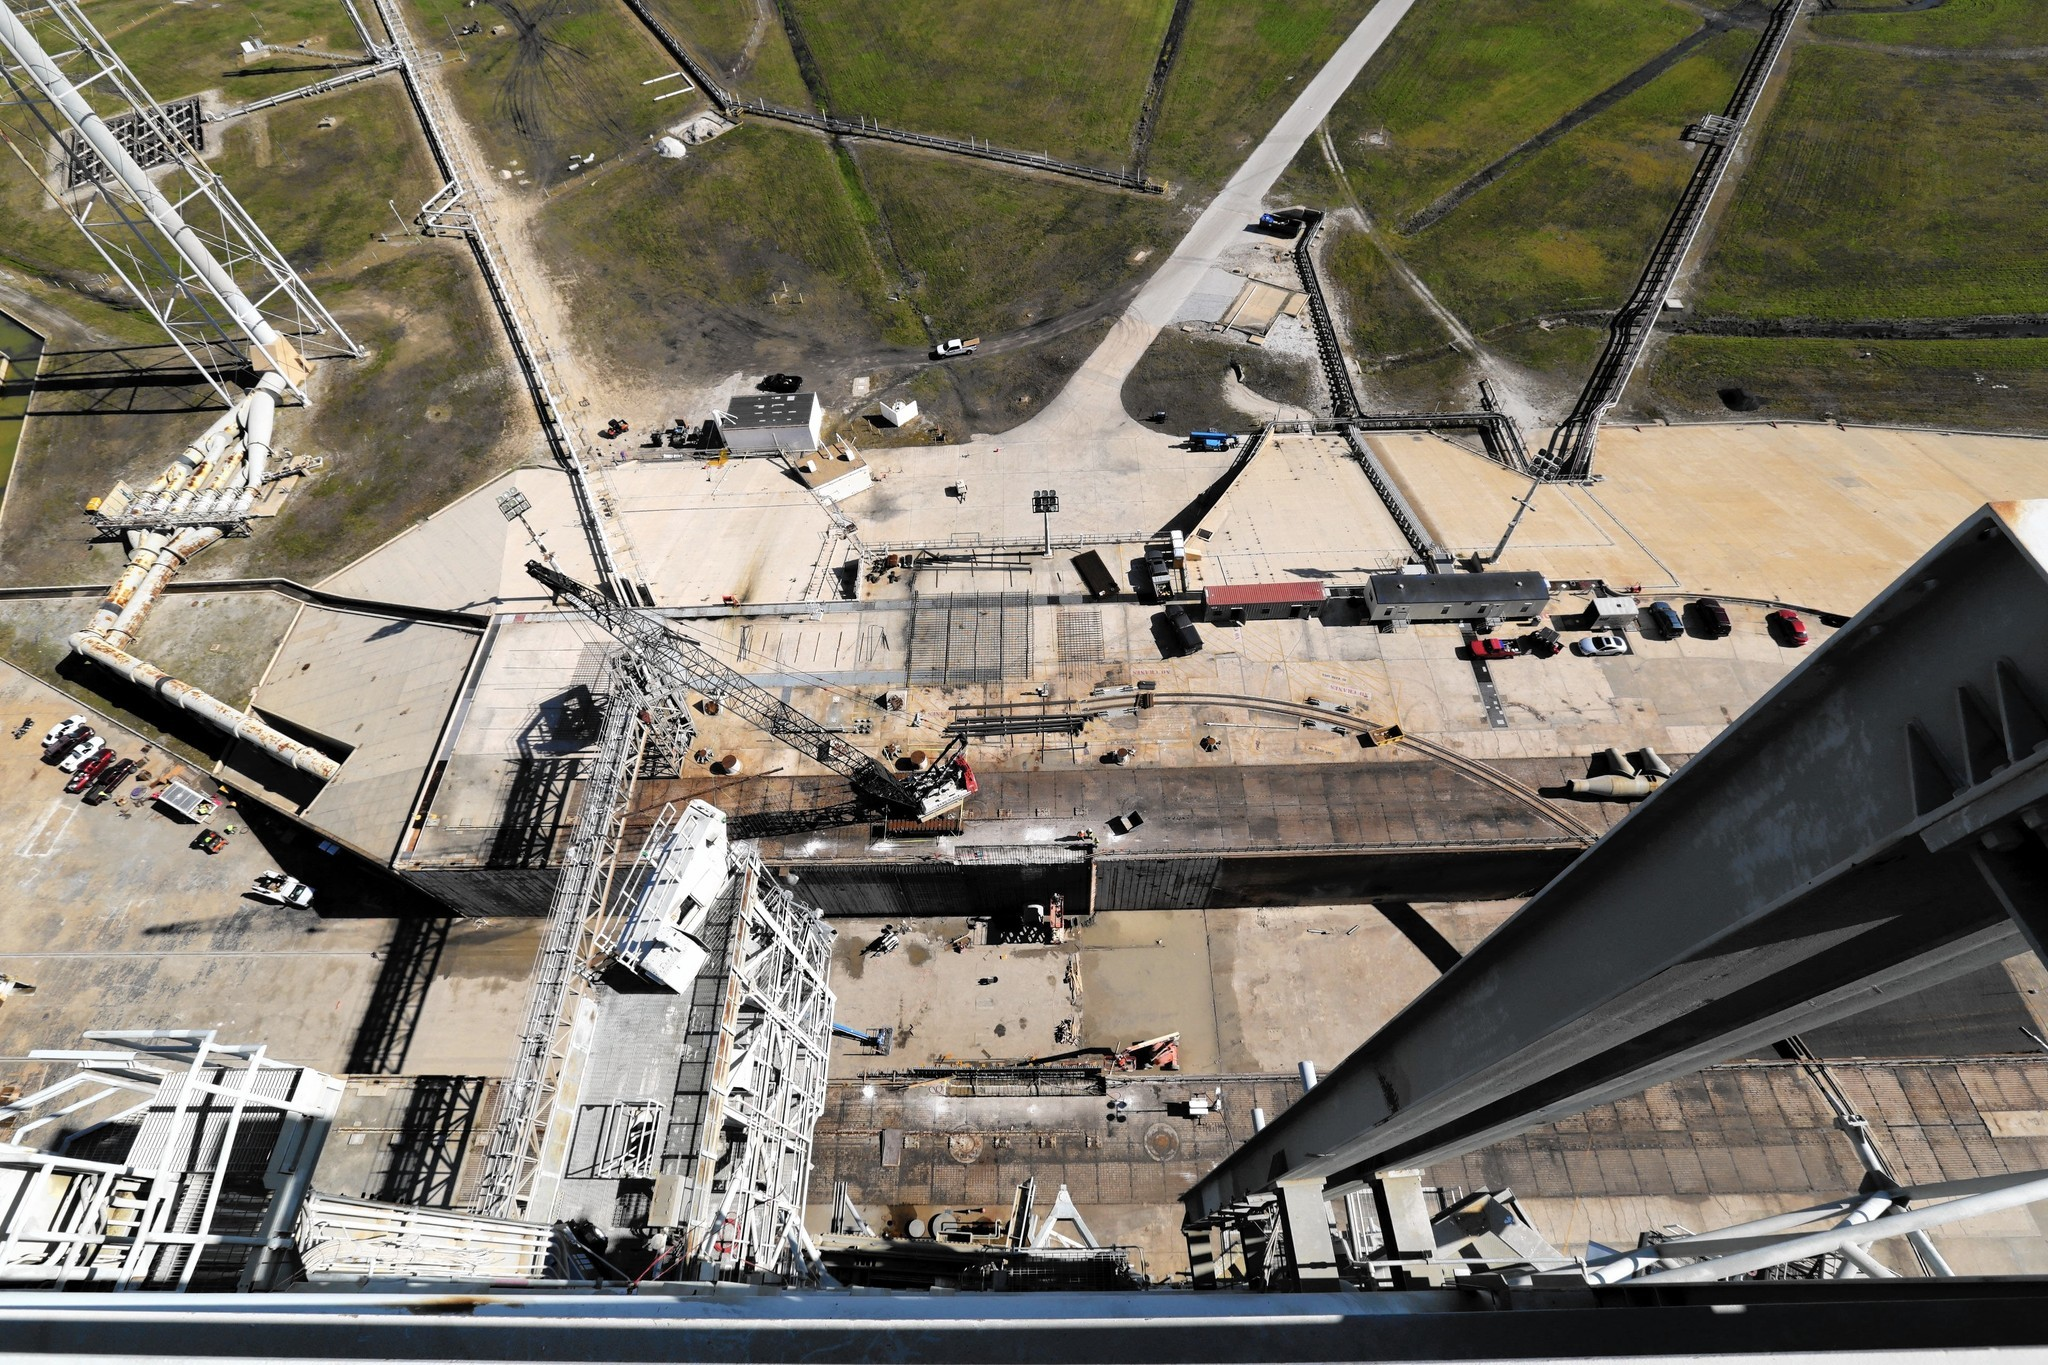 spacex launch pad 39a - photo #4